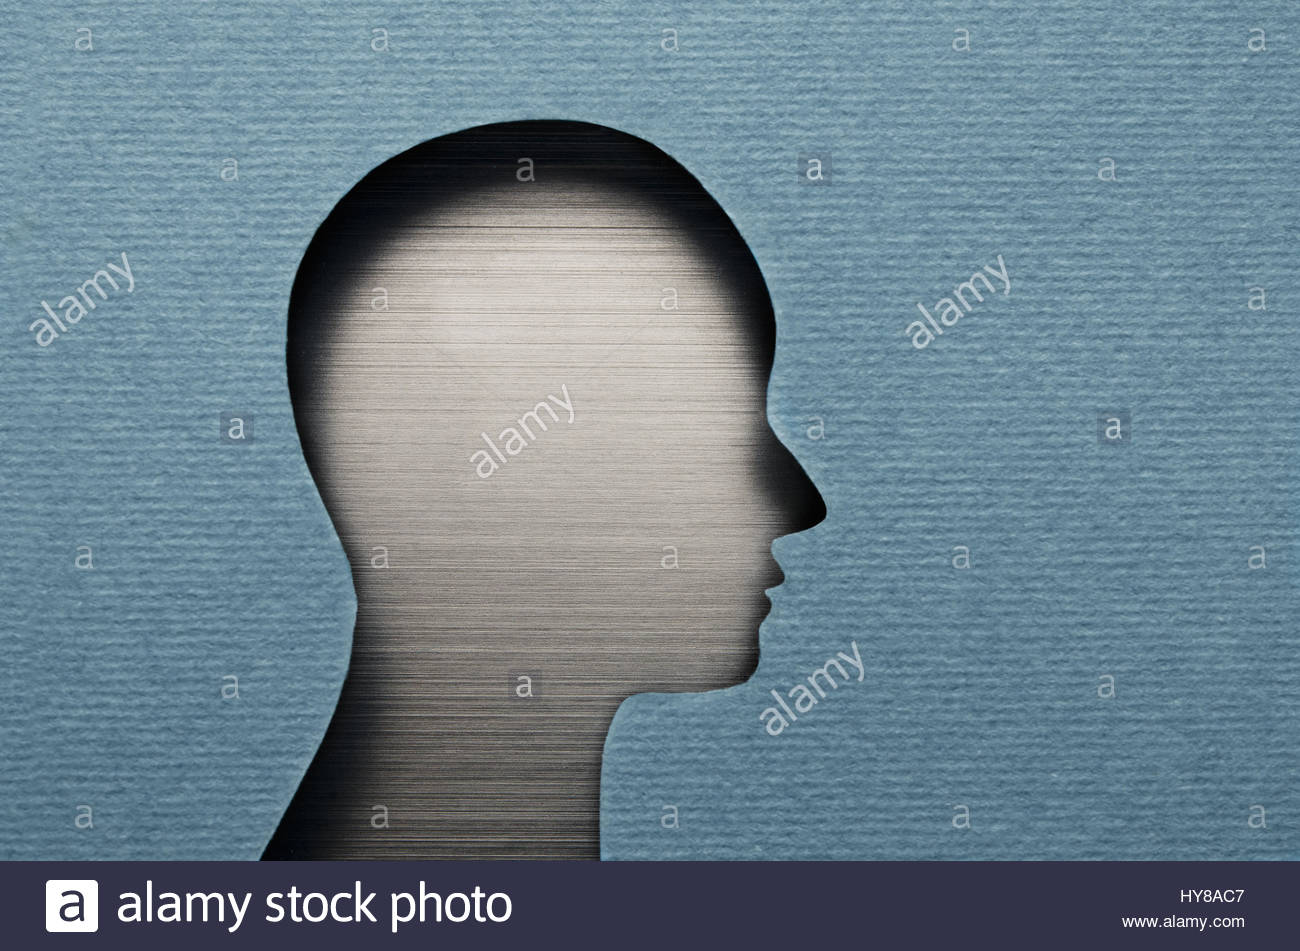 Human head cardboard cutout with copy space - Stock Image